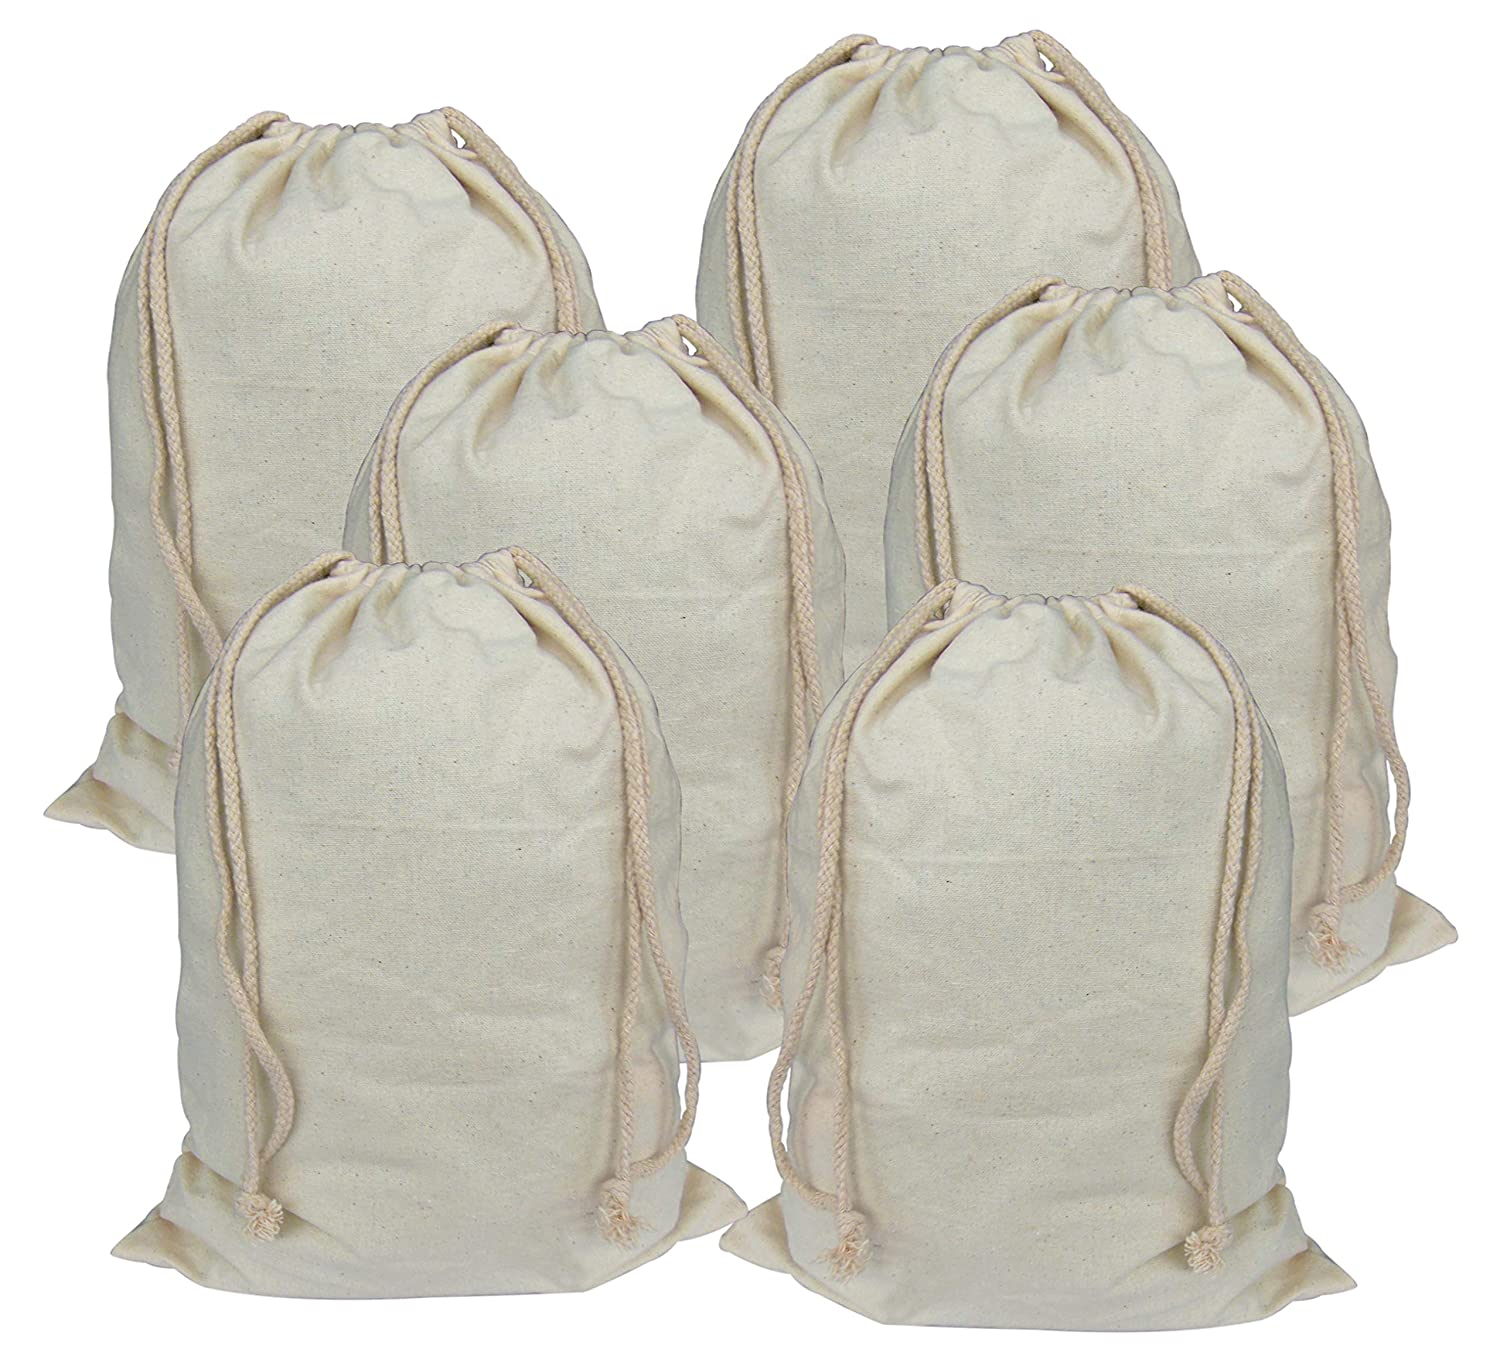 Lontenrea 6 Pcs 12x16 Inches Drawstring Cotton Muslin Bags Reusable Storage Bag (6 Pcs 12x16)